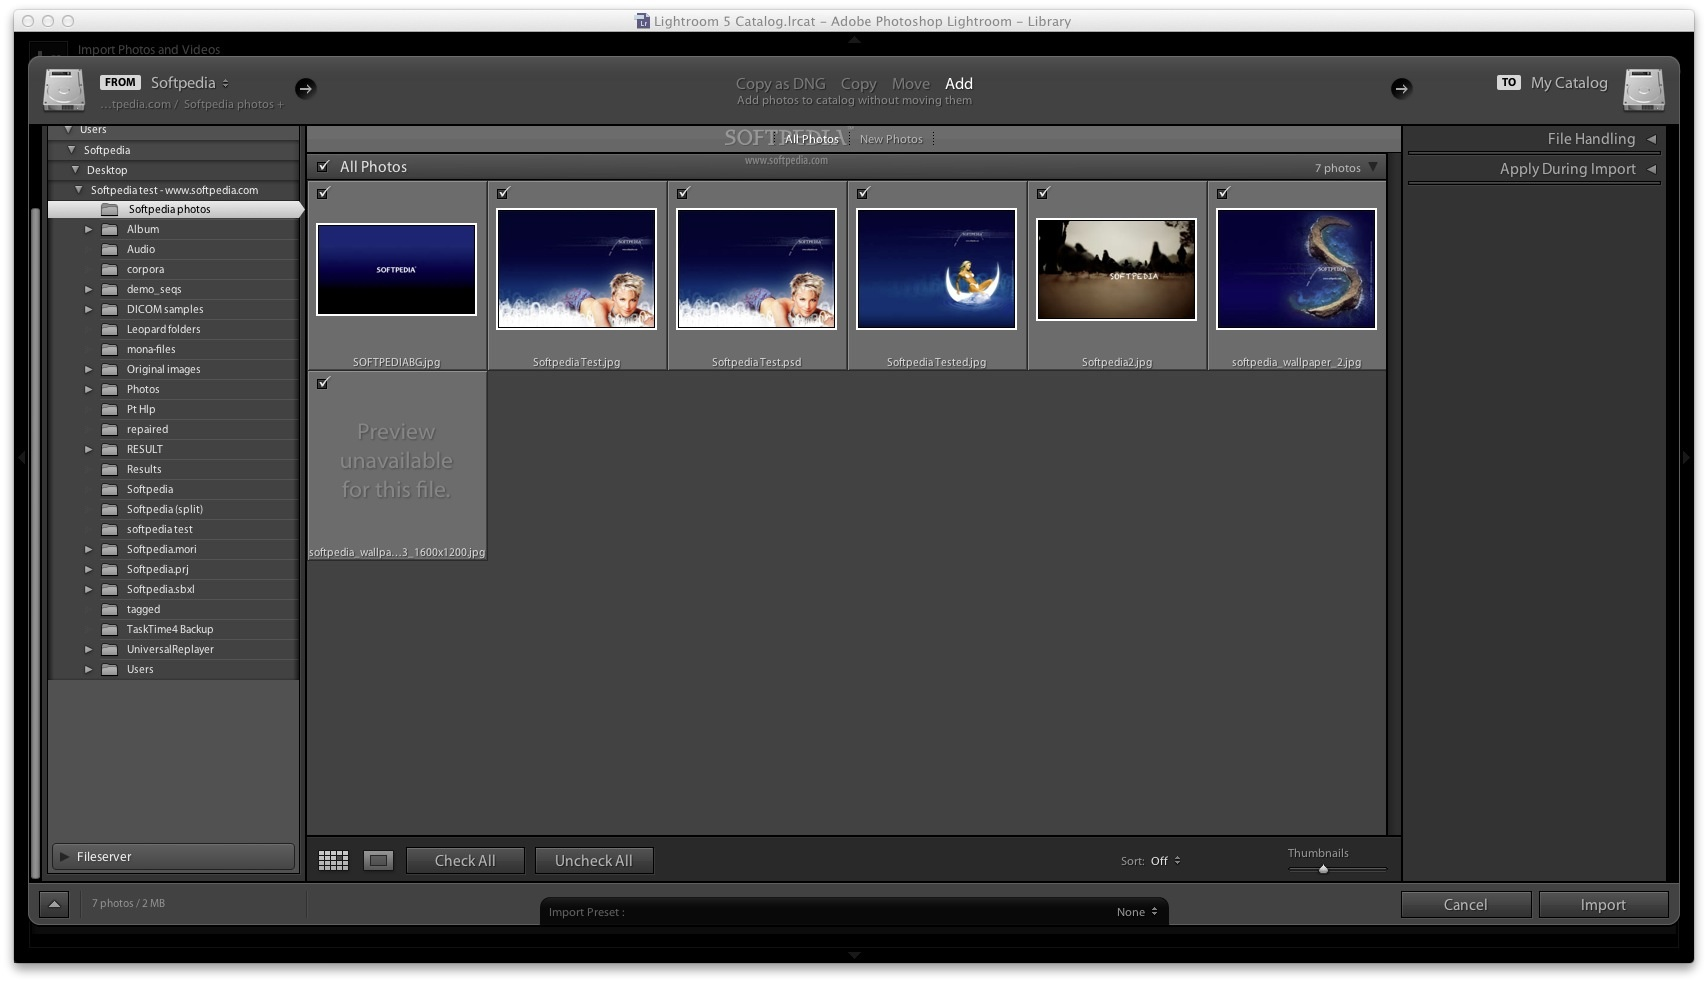 Adobe Lightroom screenshot 1 - In the Library window you can search and import image files found on your Mac.